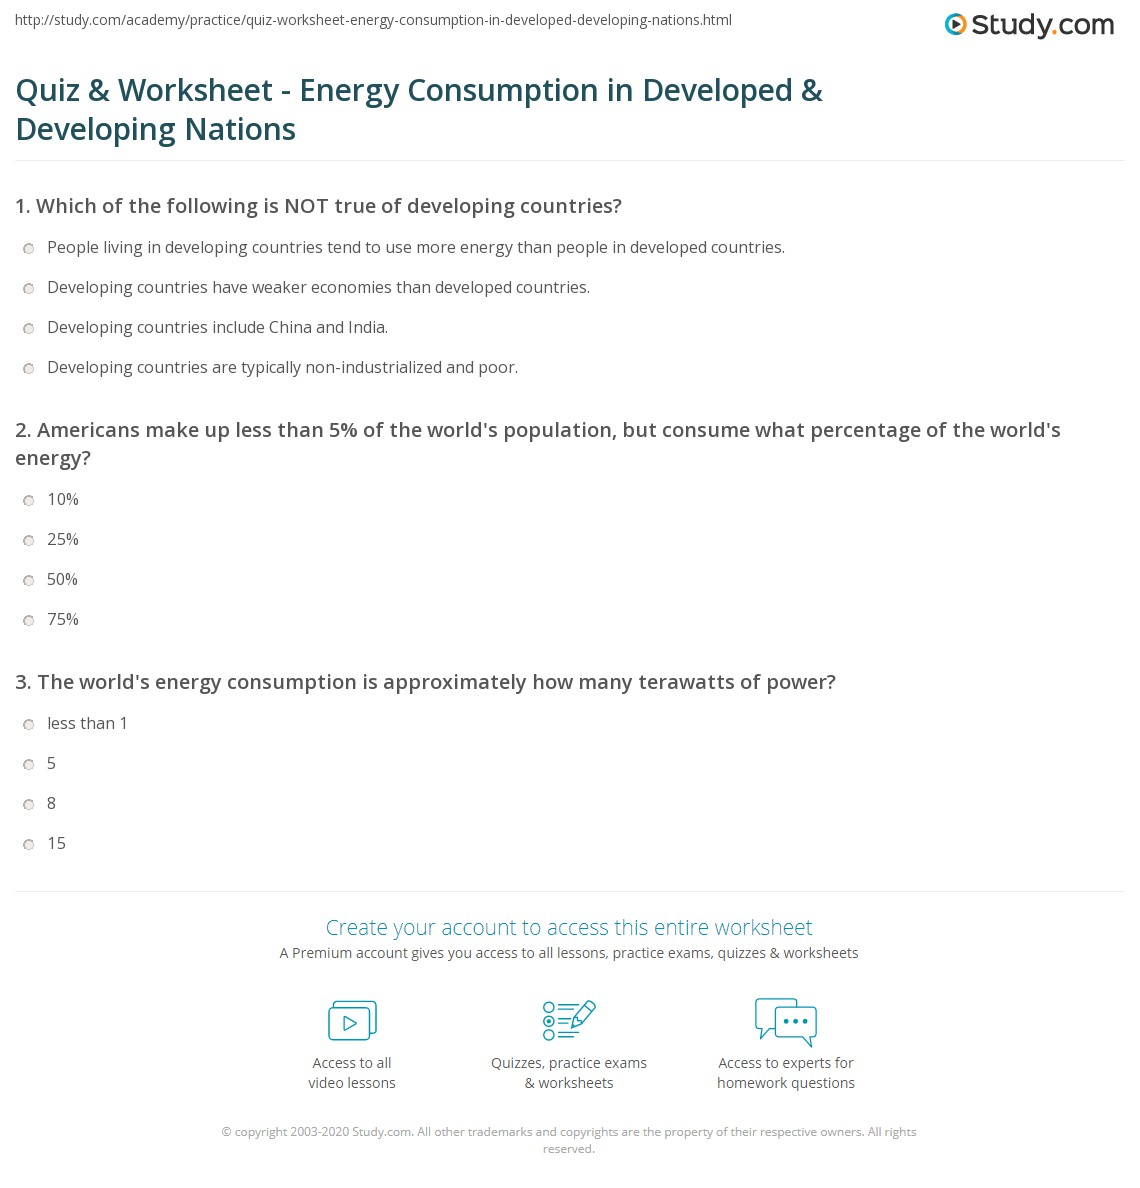 Quiz W Ksheet Energy C Sumpti Developed Develop G